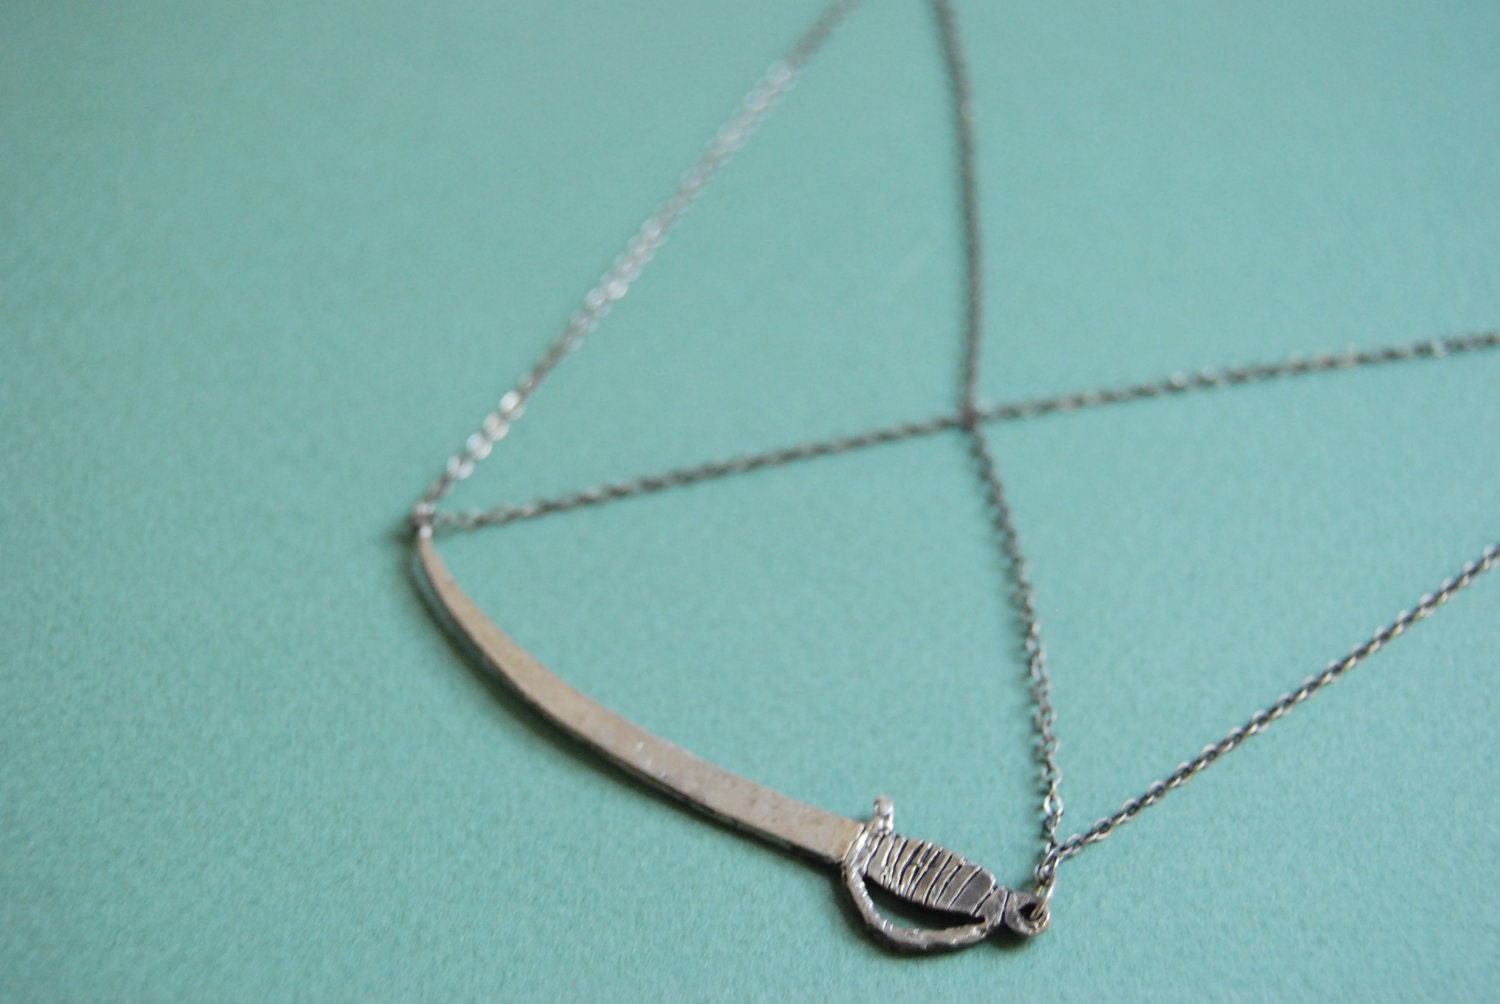 Crossed chain sword necklace